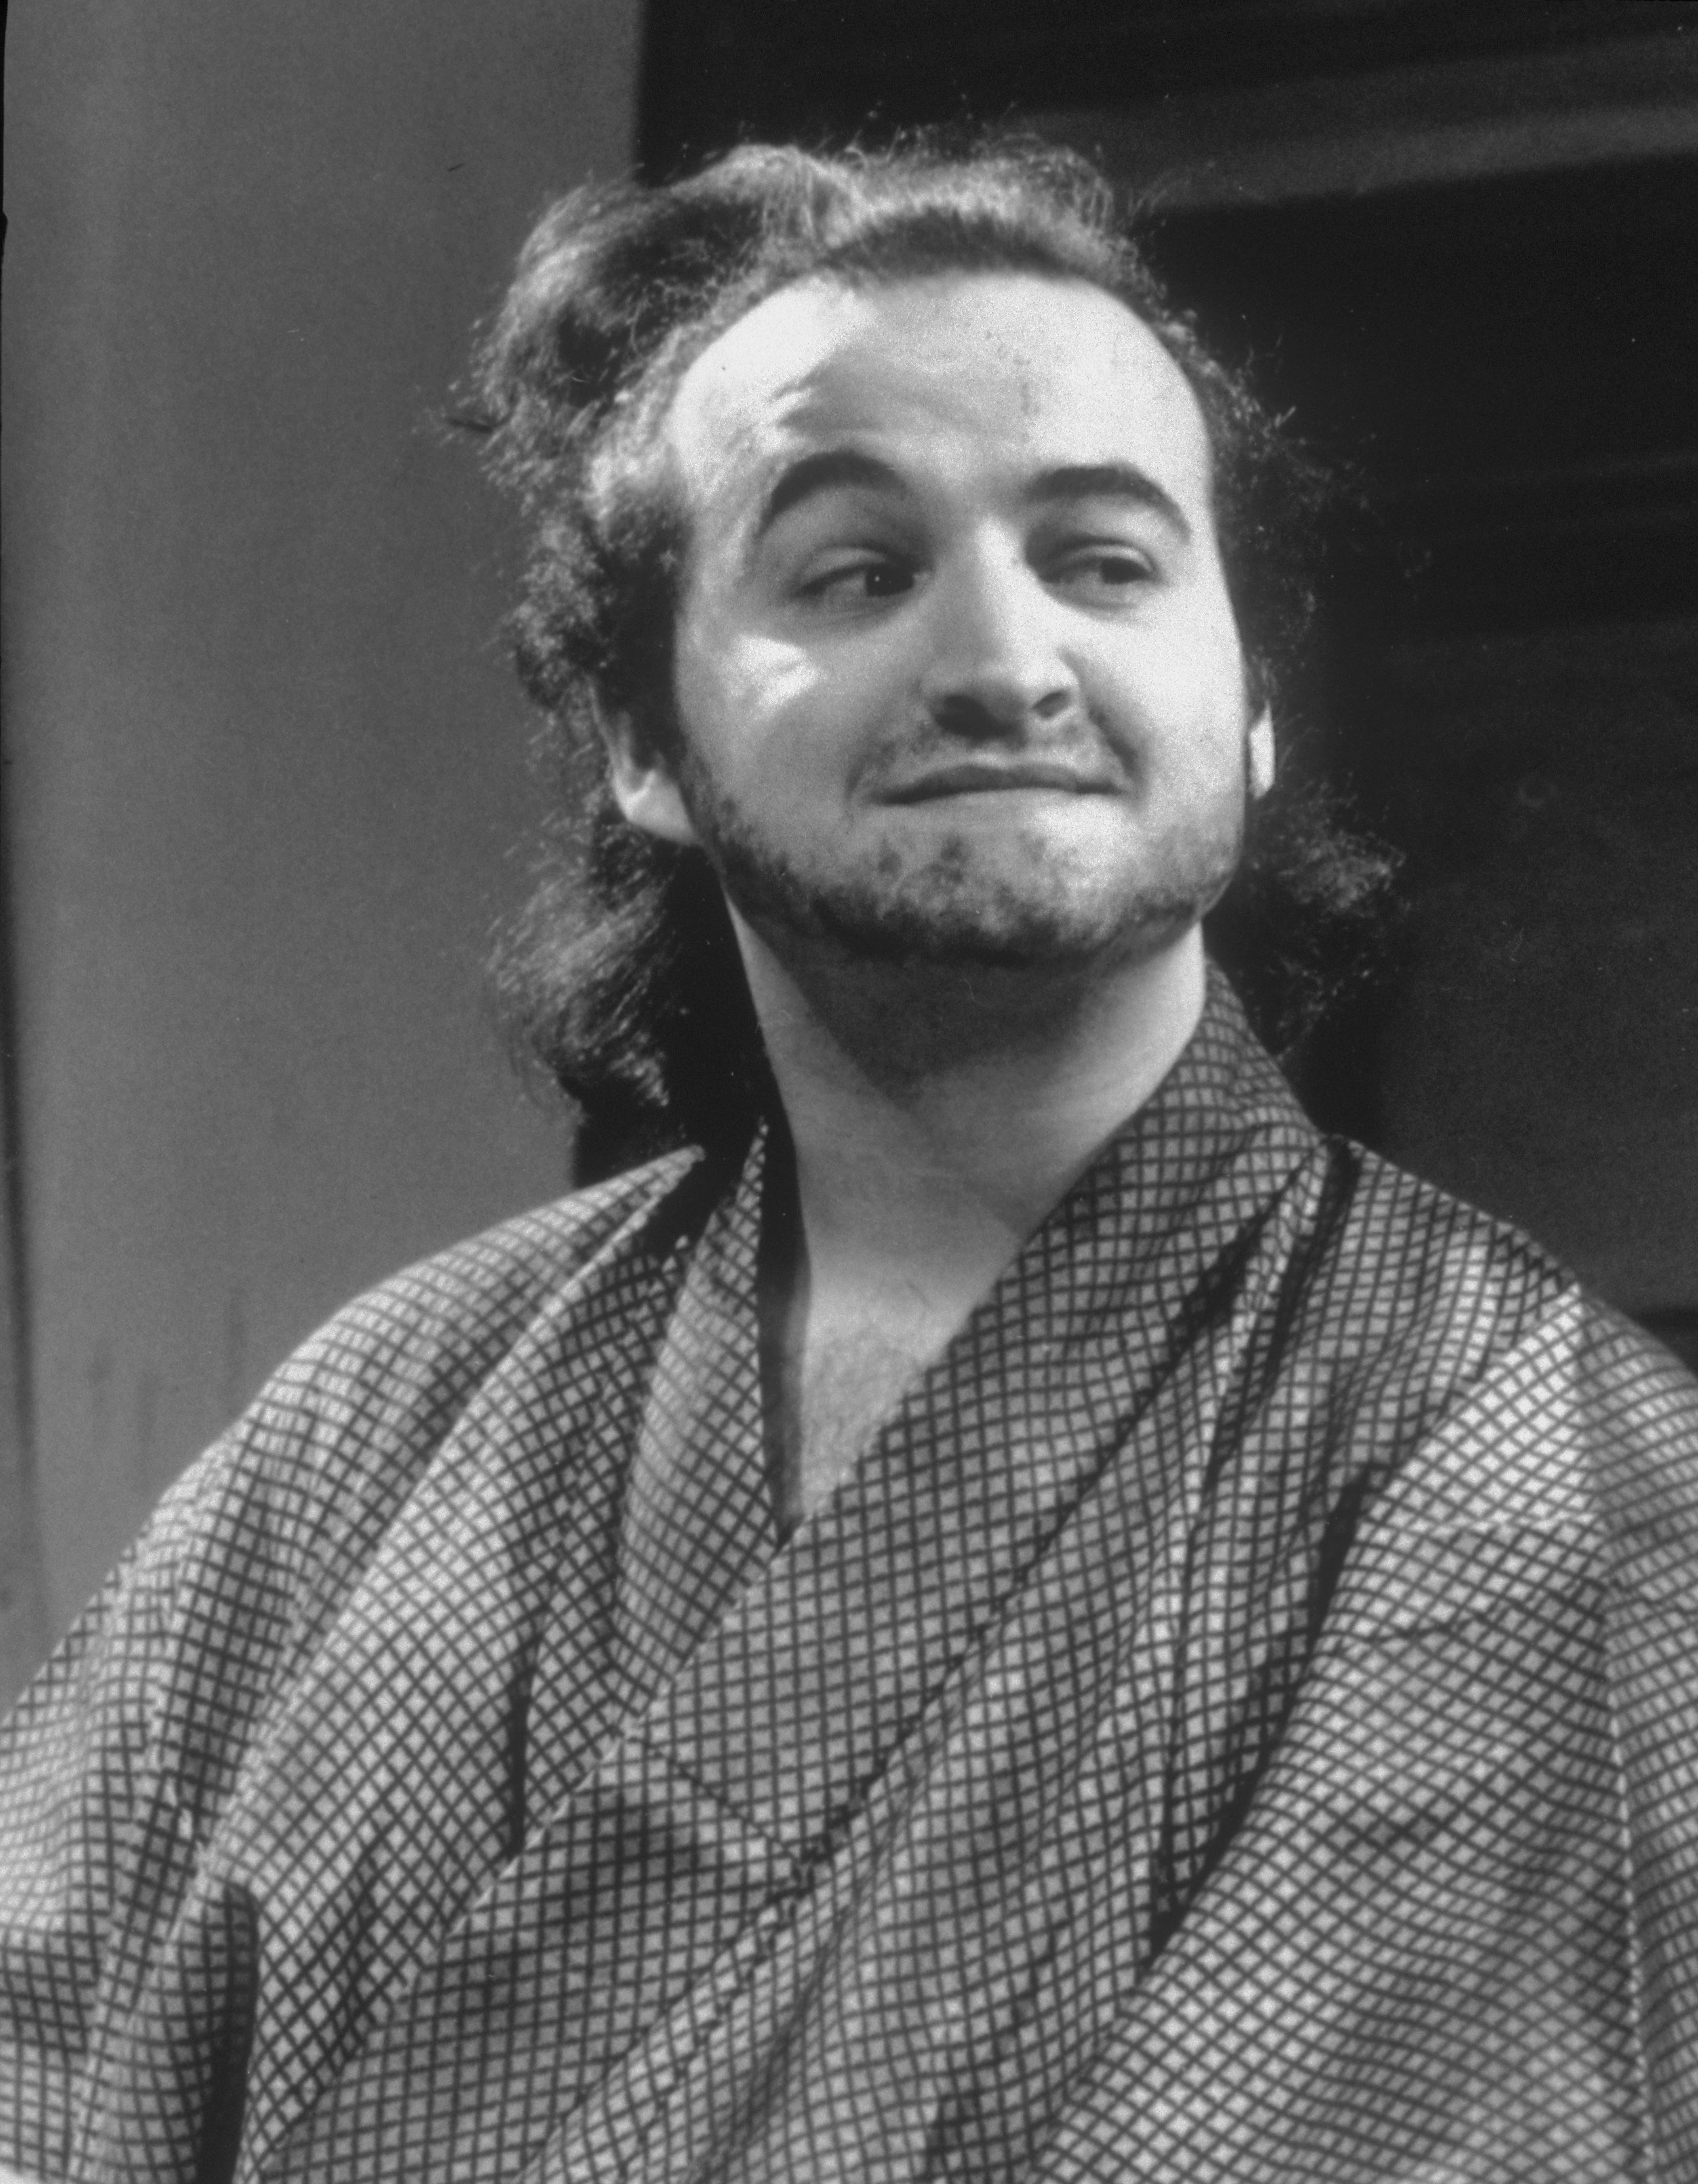 1565334198395_Belushi1.jpg - Nello show Sutarday Night Live, 1975